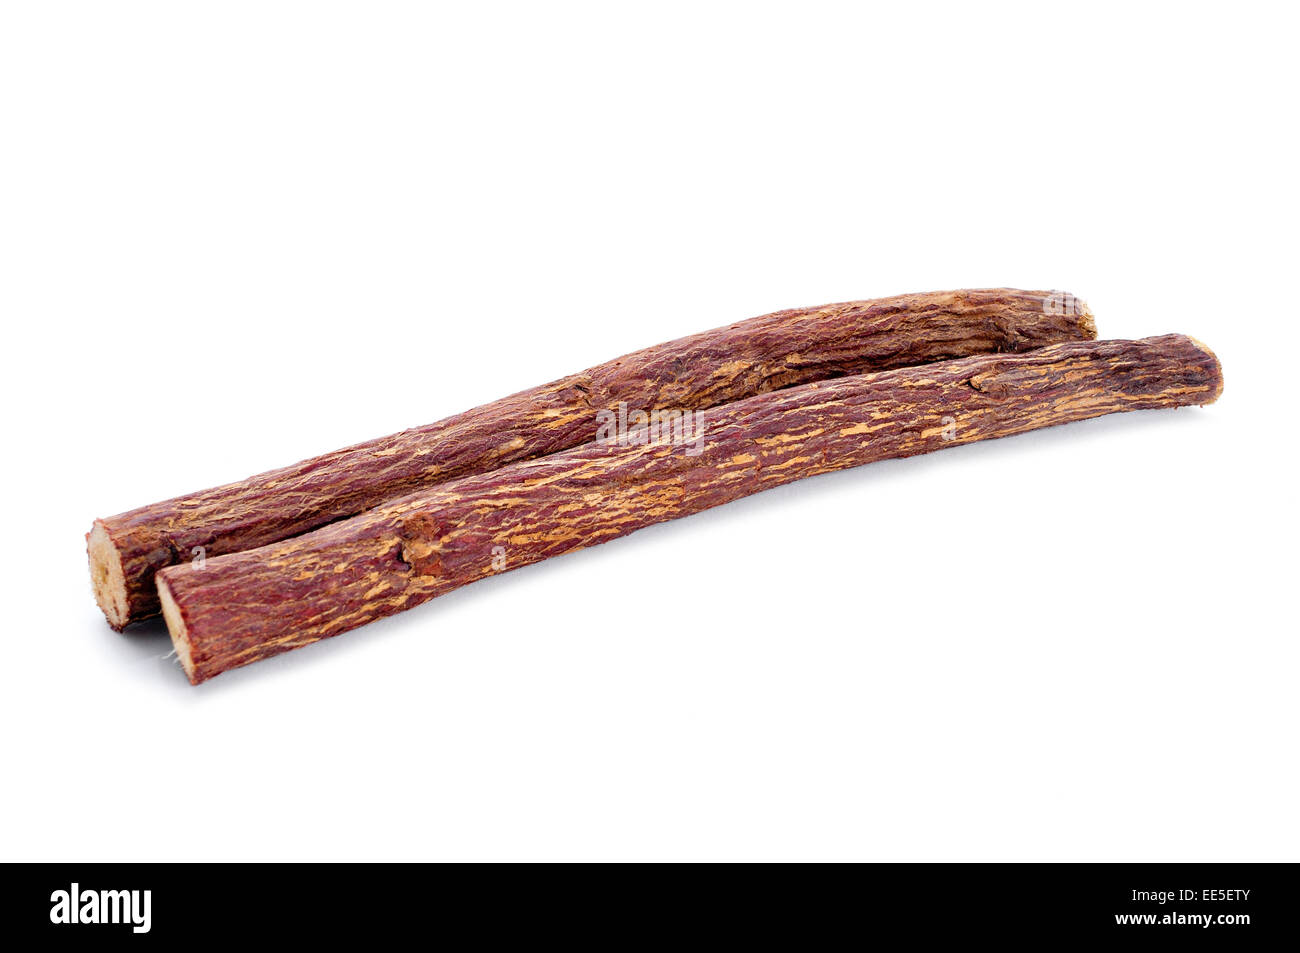 some licorice roots on a white background - Stock Image